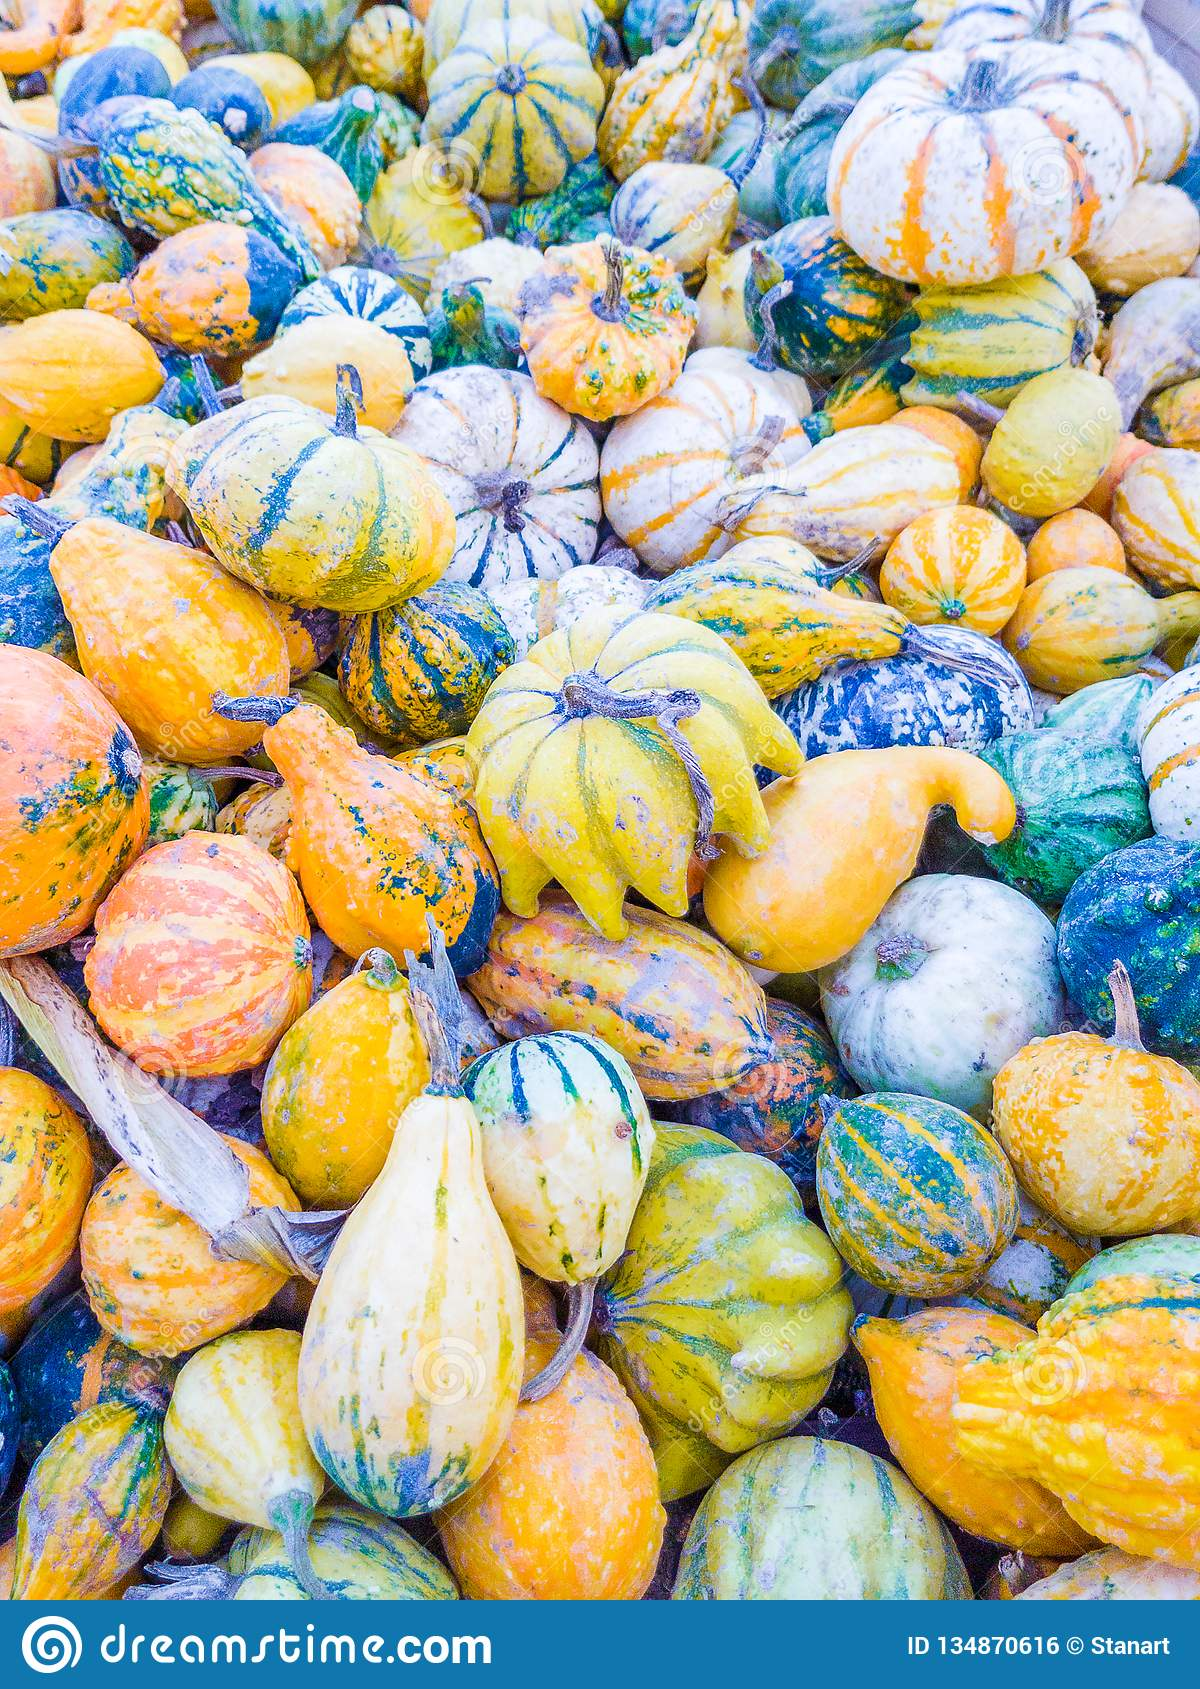 Many winter squash and ornamental pumpkins on farmers market for sale in autumn